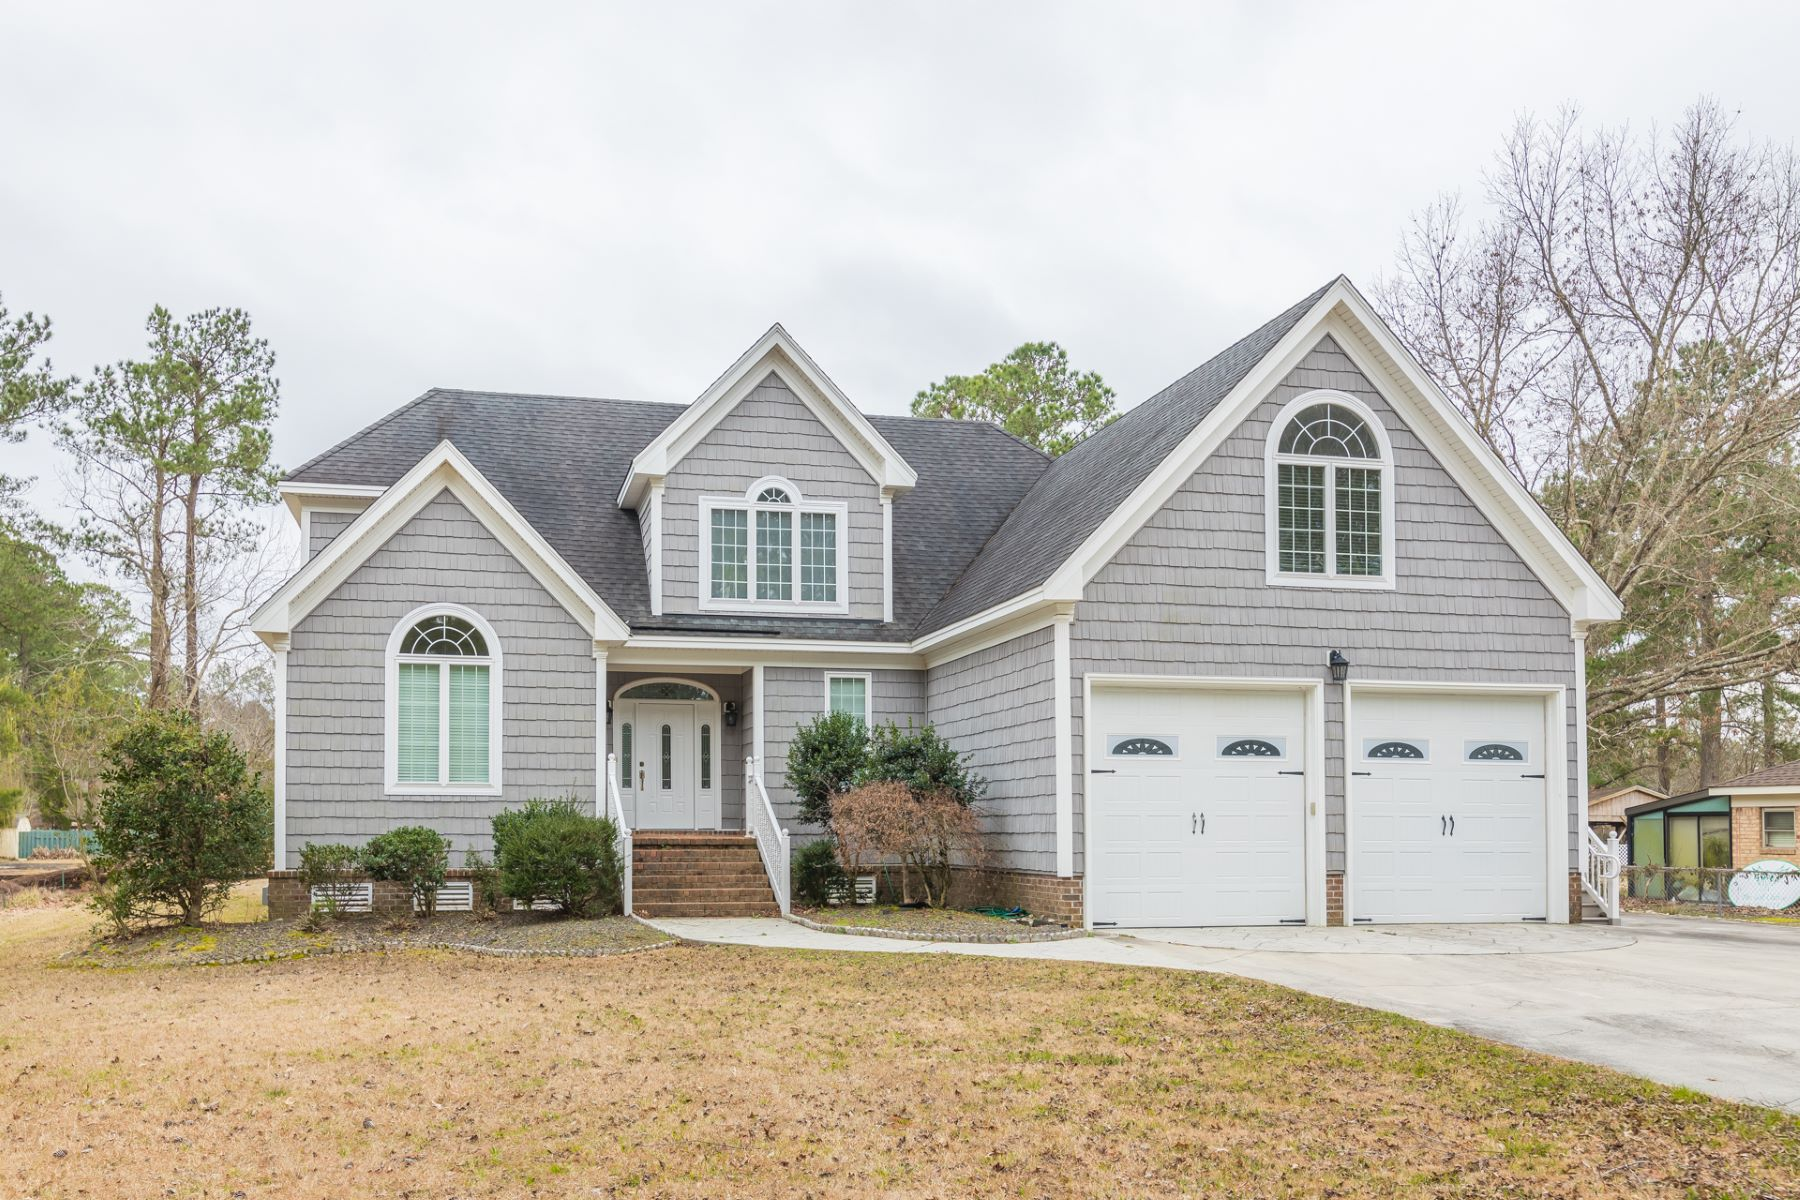 Single Family Home for Active at BEECHWOOD SHORES 115 Vincent Drive Moyock, North Carolina 27958 United States